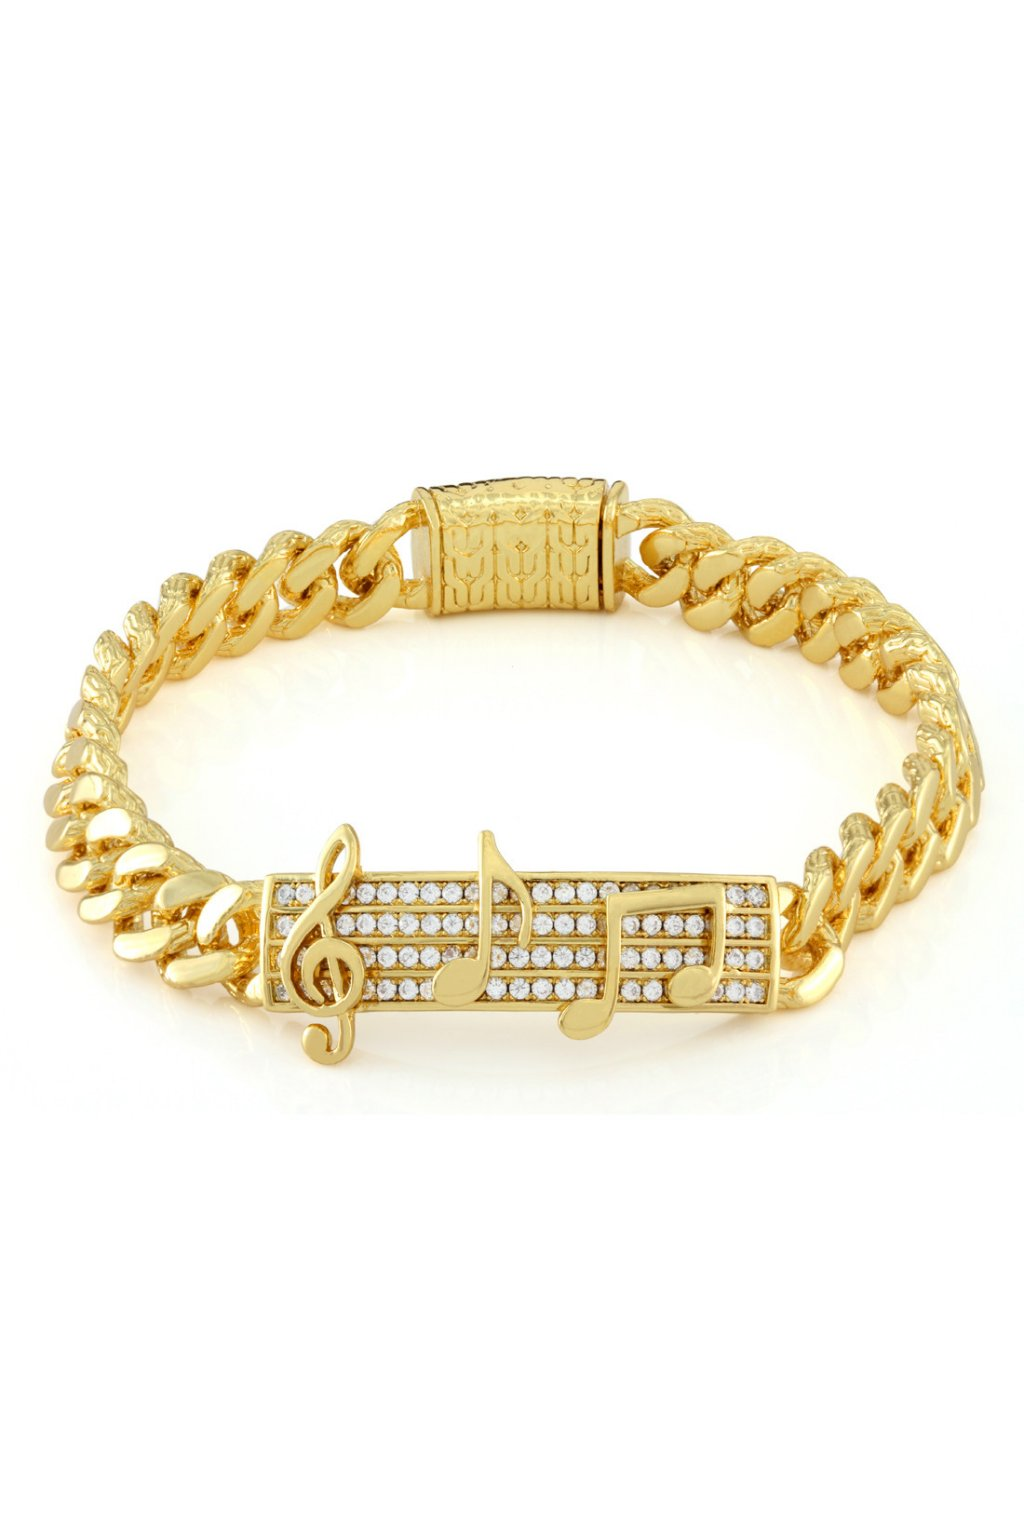 BRX12025 The 14K Gold Note ID Band